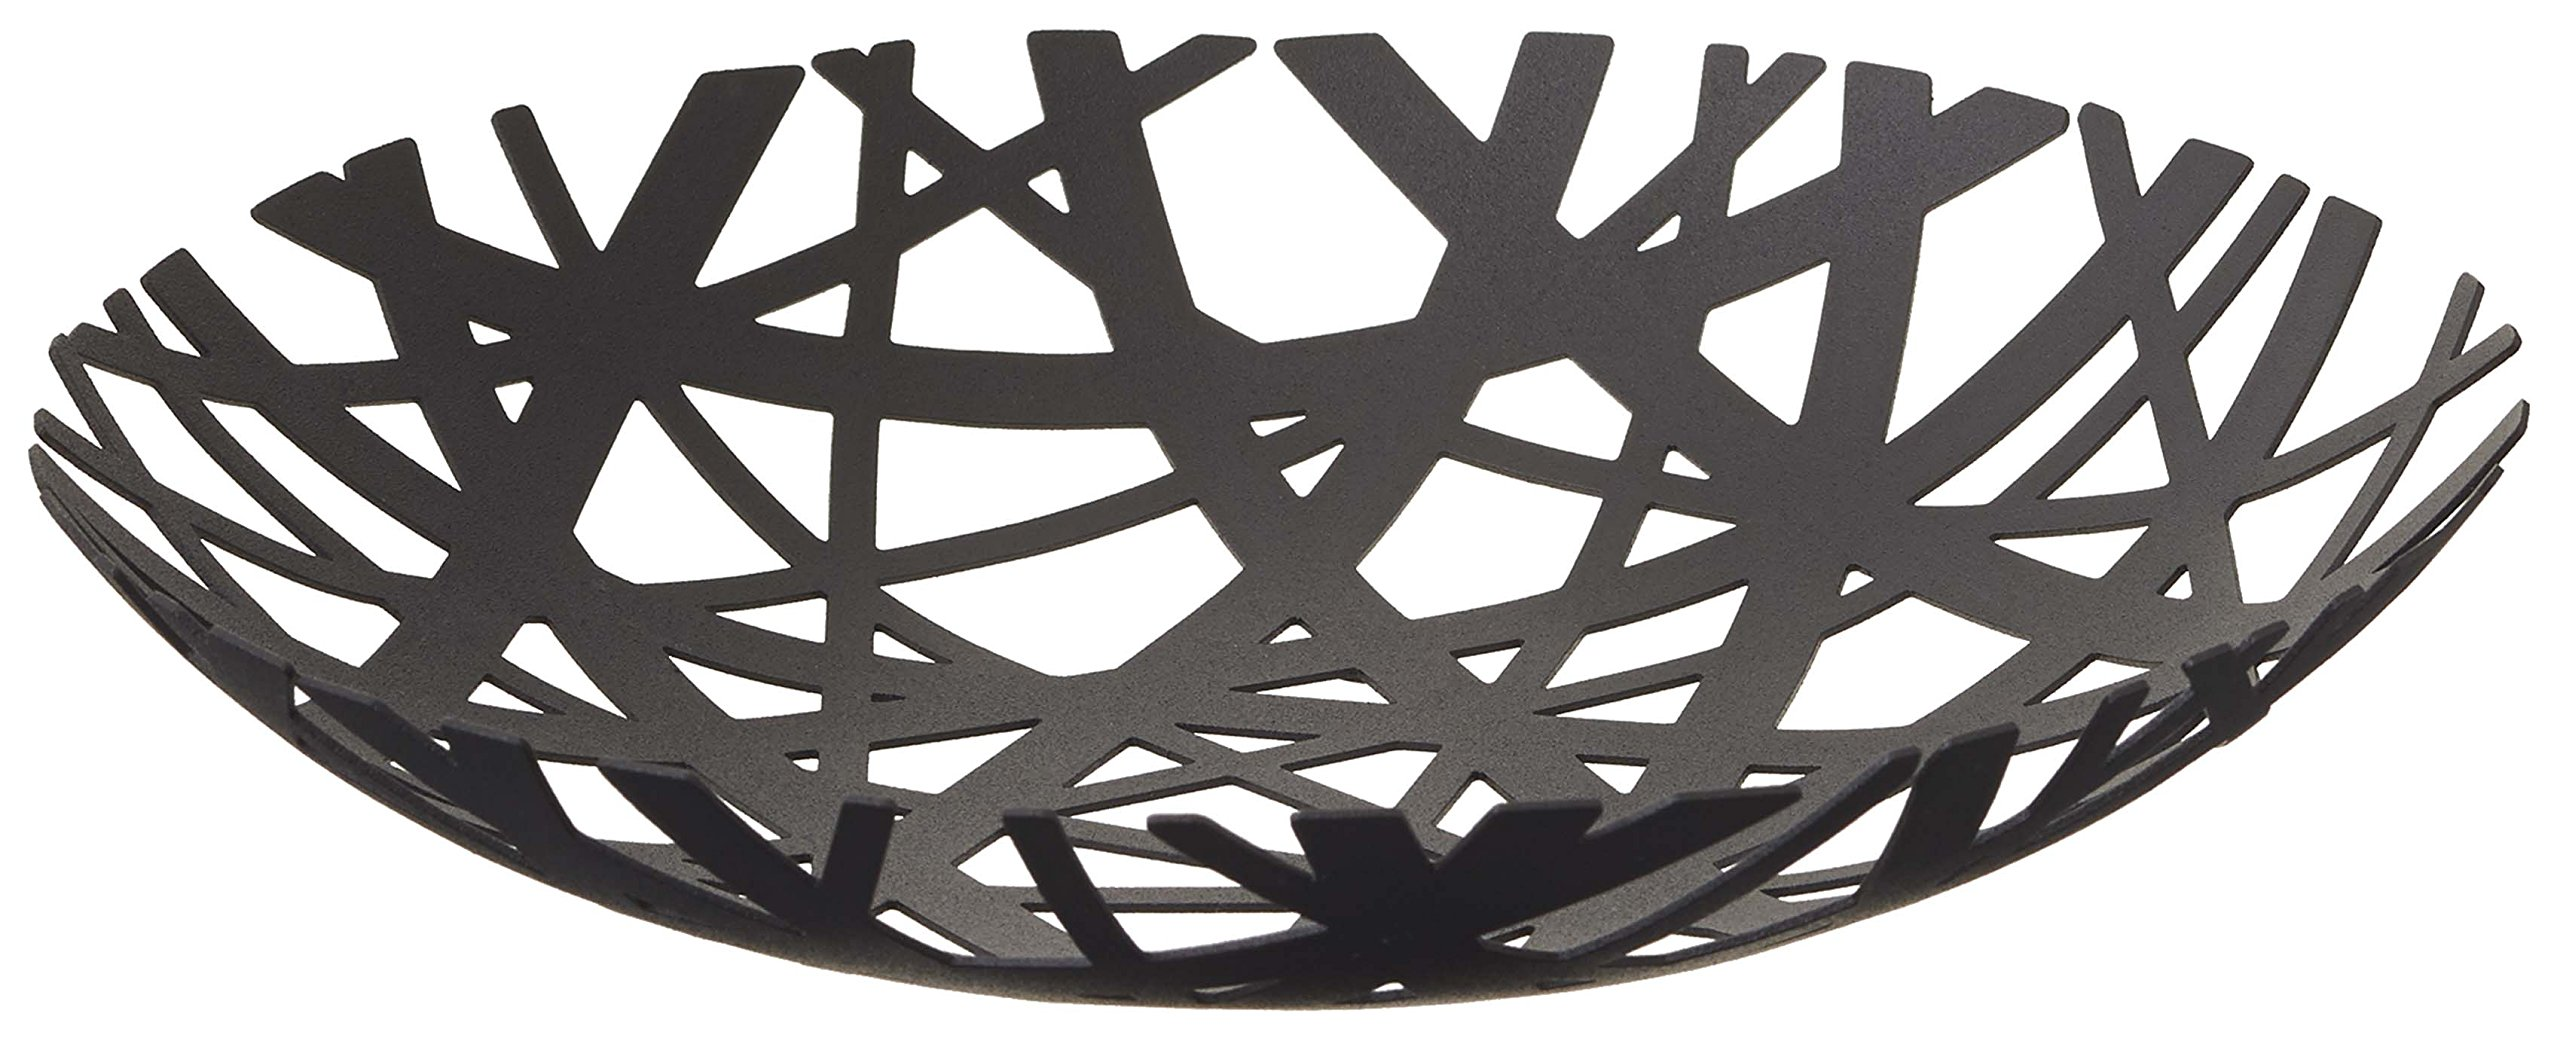 Red Co. Decorative Centerpiece Bowl in Black - Powder-Coated Steel by Red Co.